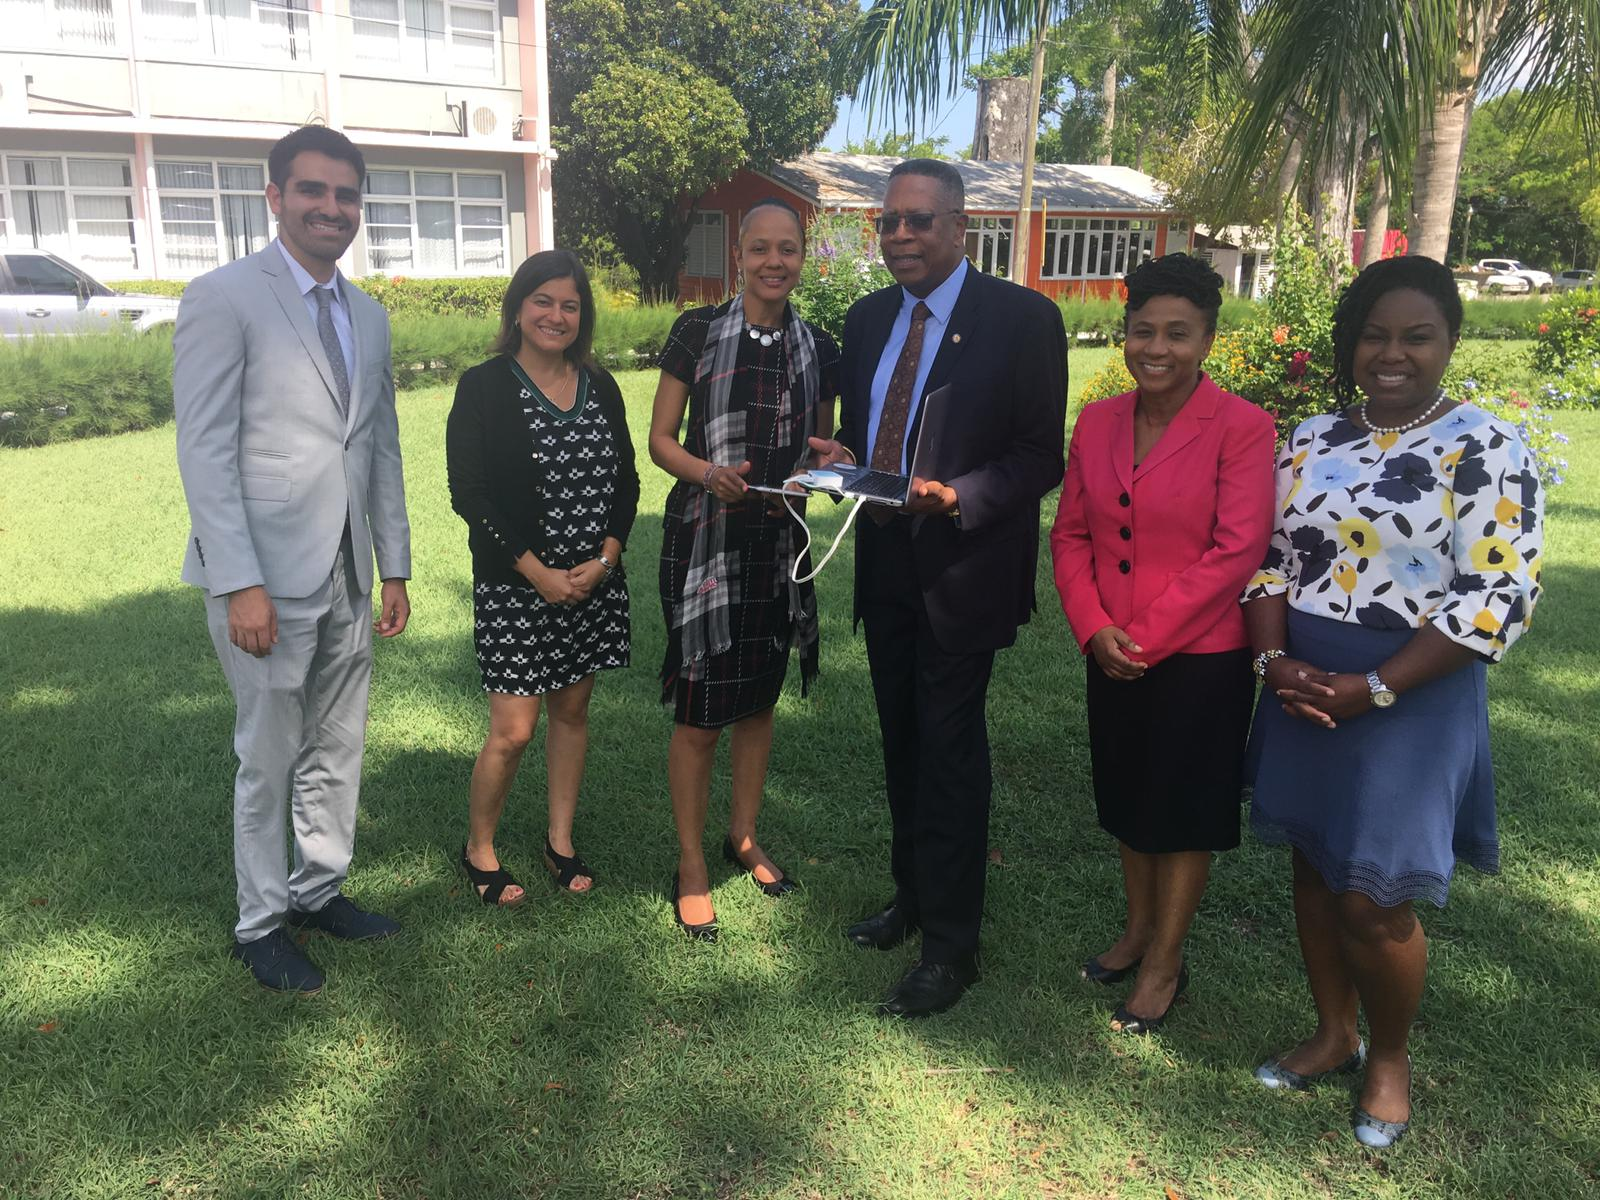 Launching of the ProFuturo Programme in Barbados